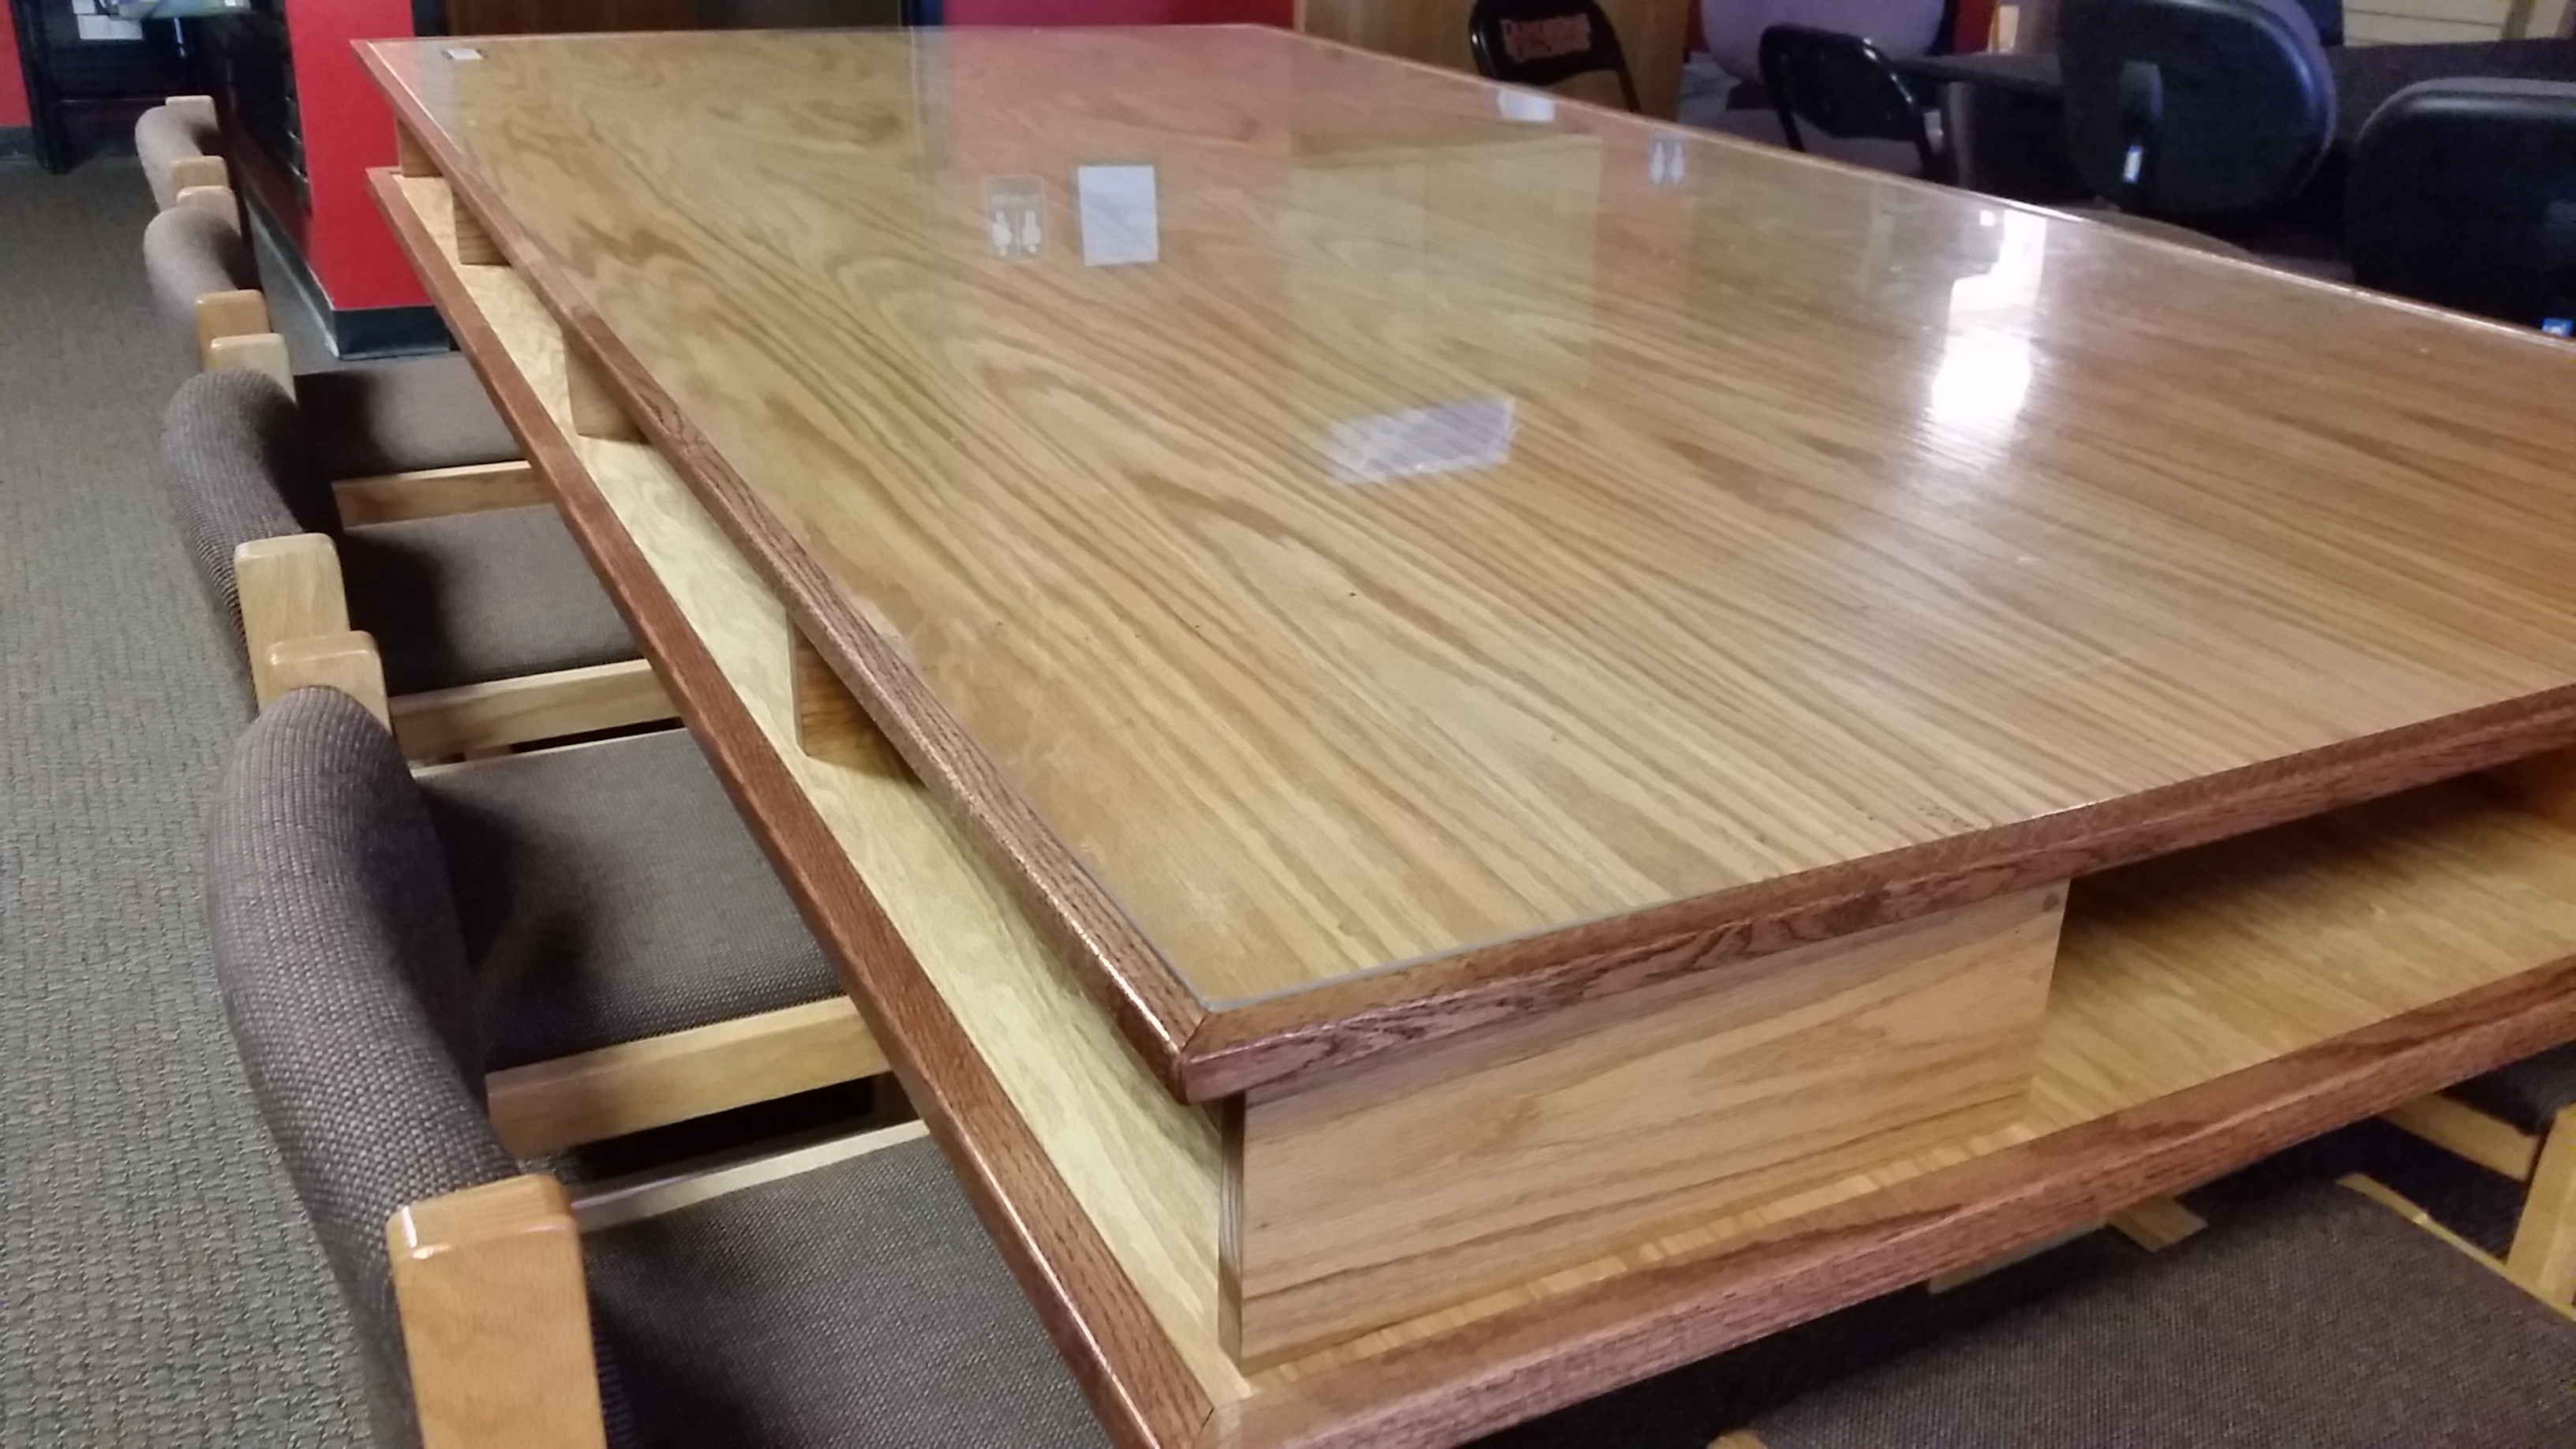 Superieur Our Premium Gaming Tables Are Perfect For RPGs Like Du0026D Encounters,  Pathfinder Society, Or Your Weekly Role Playing Game. Made From Golden Oak,  ...